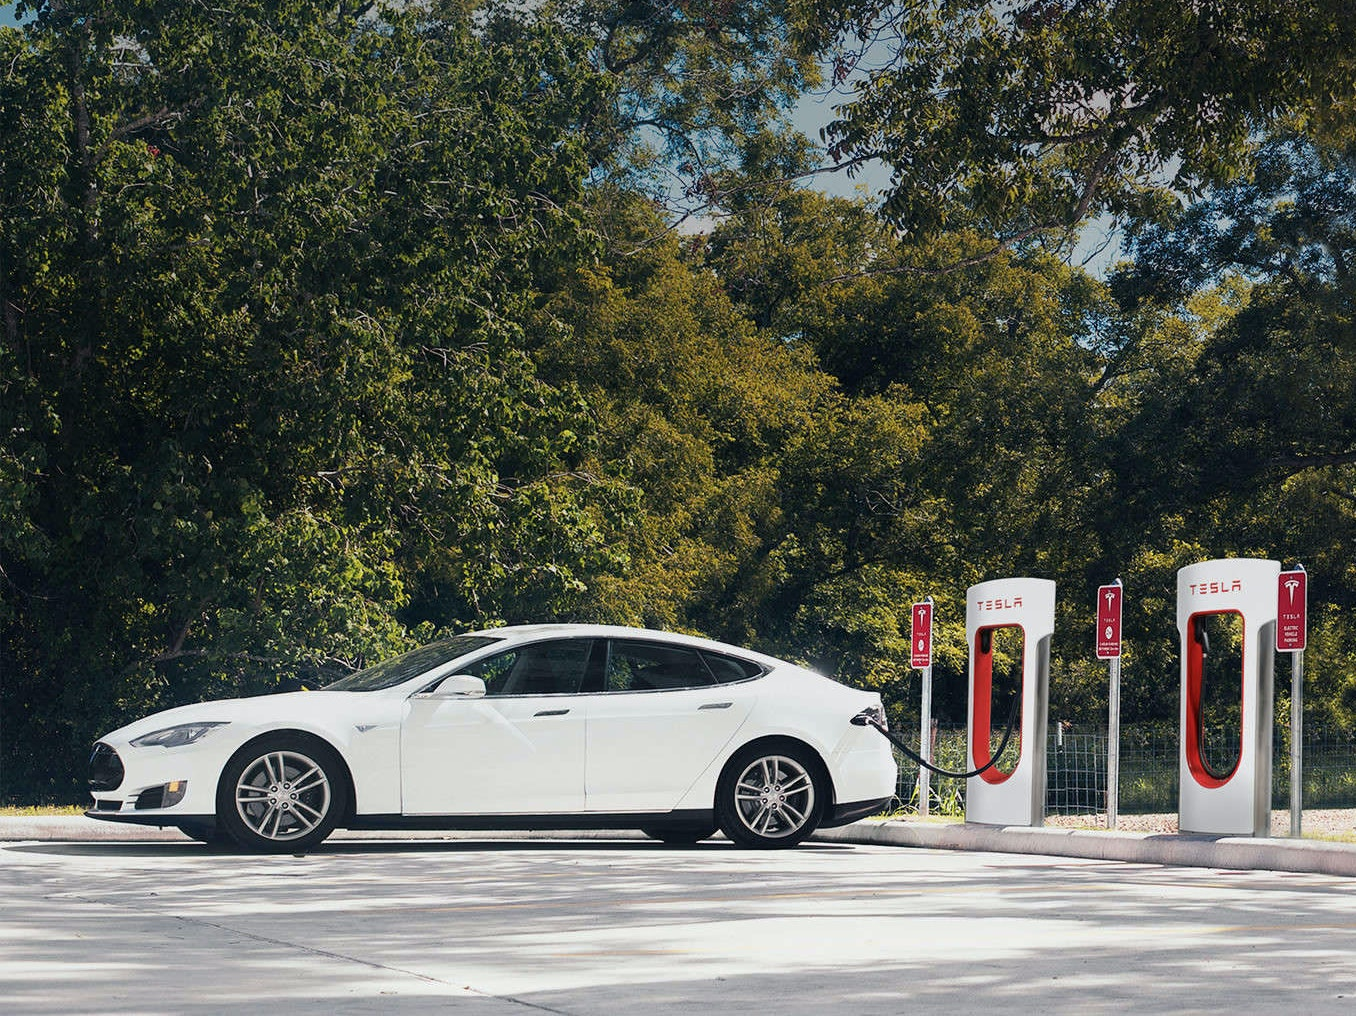 Supercharging Your Tesla Will No Longer Be Free